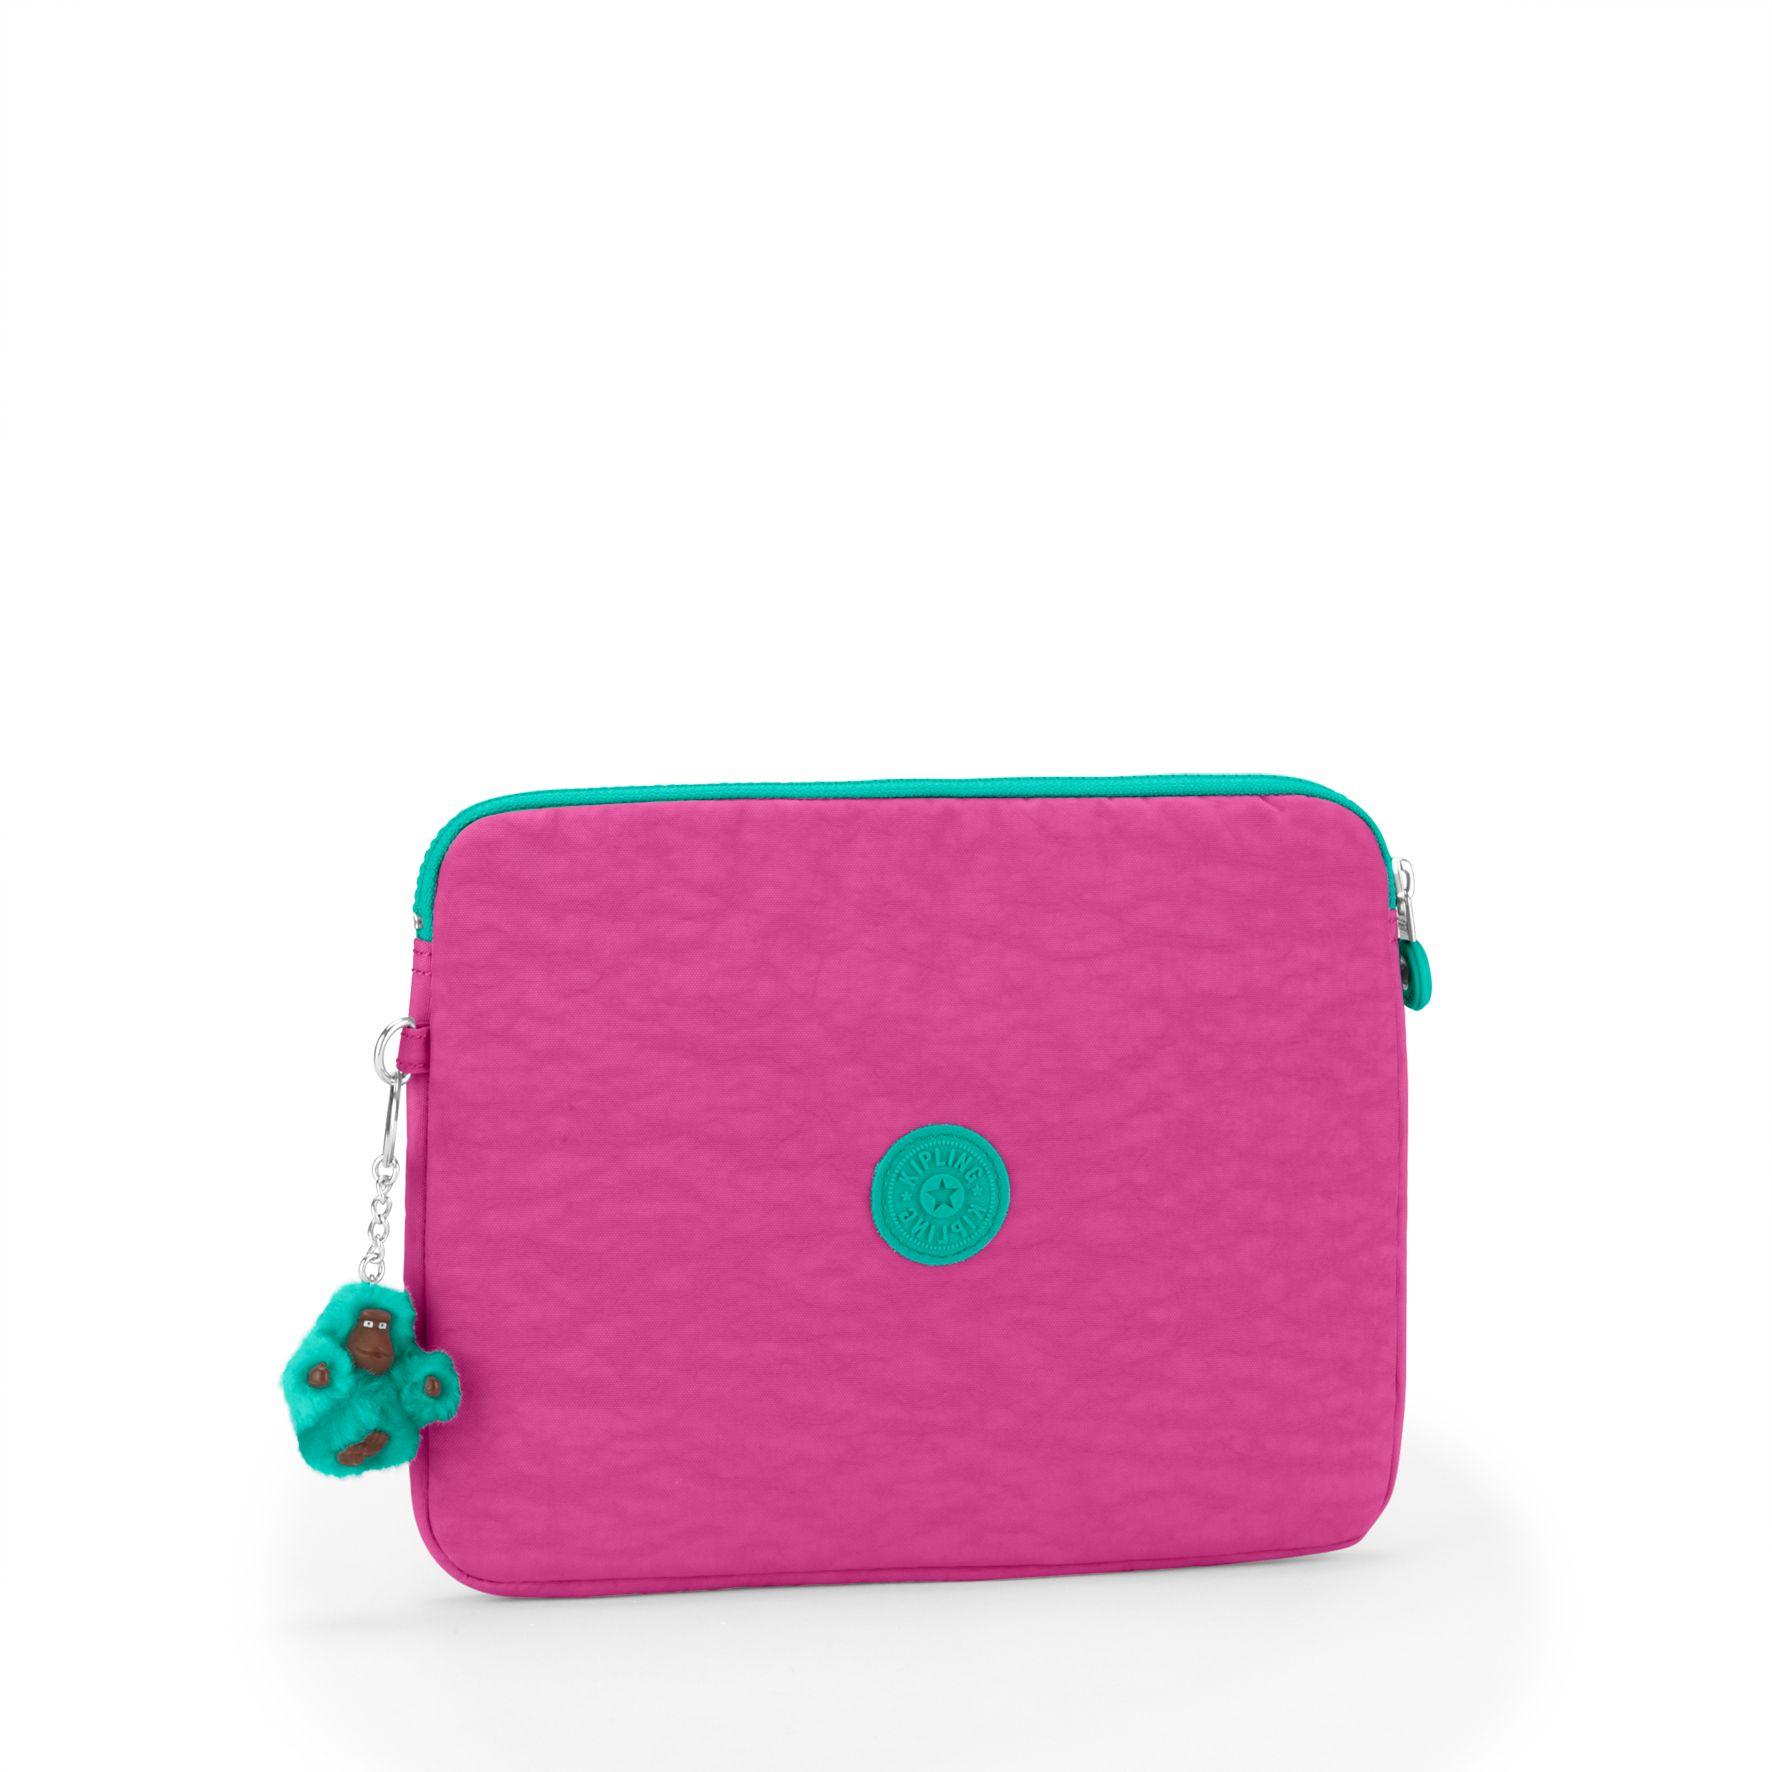 Digi touch iPad sleeve